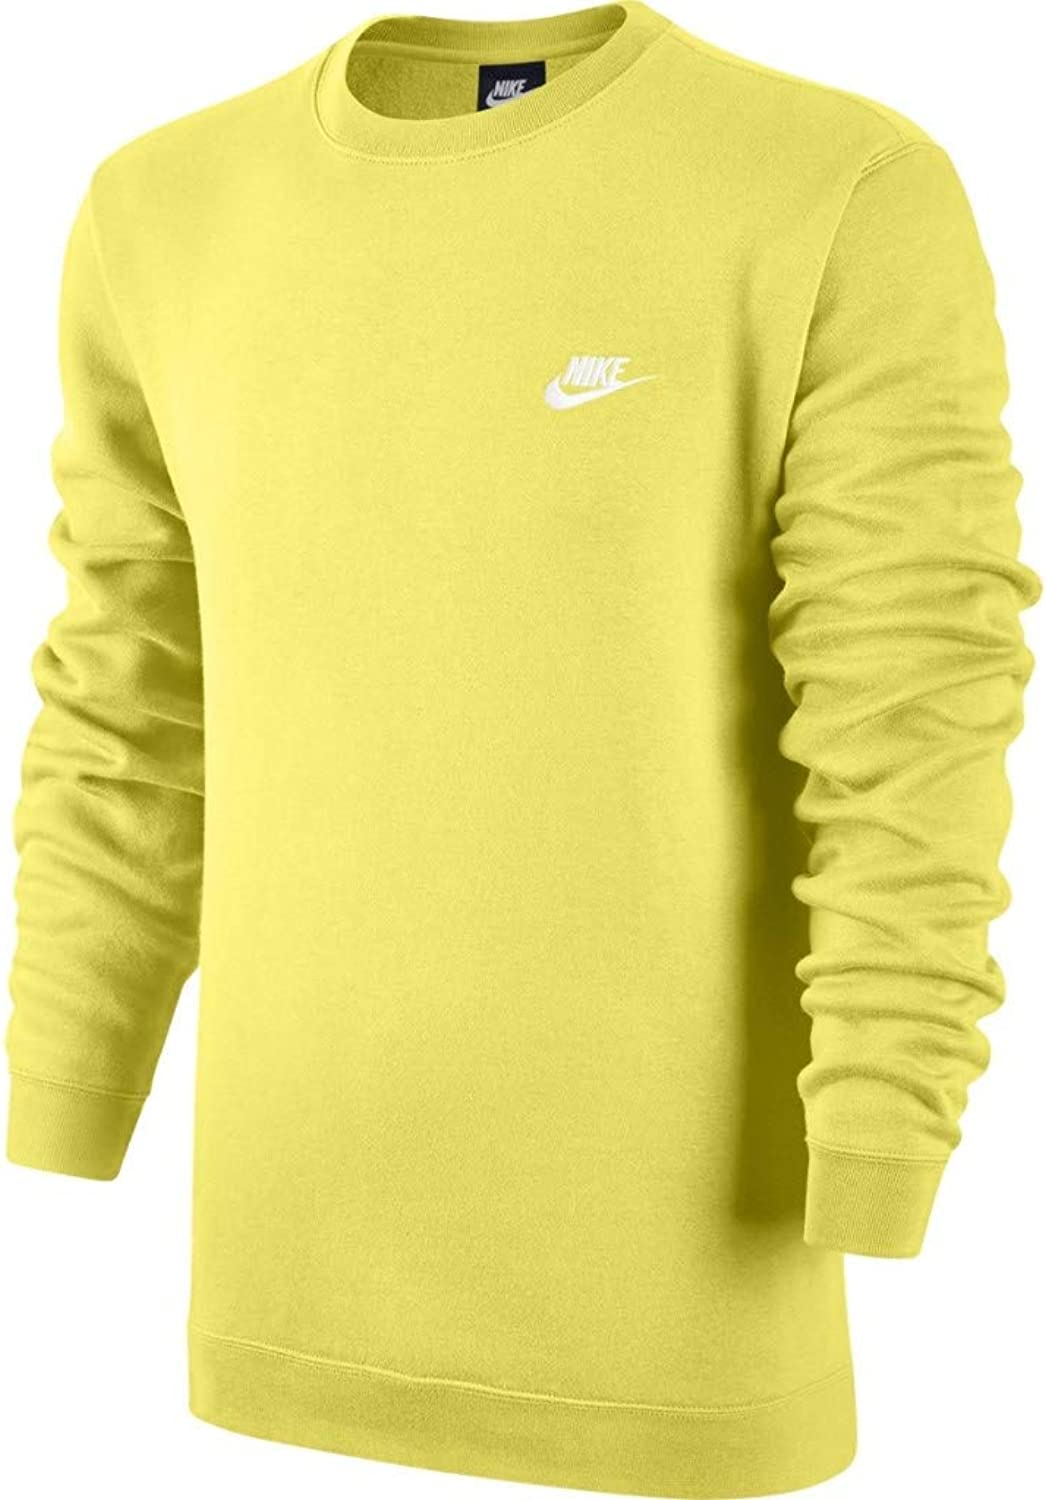 Nike Mens Sportswear Crew Fleece Club Sweatshirt Yellow Pulse White 804340-785 Size Large